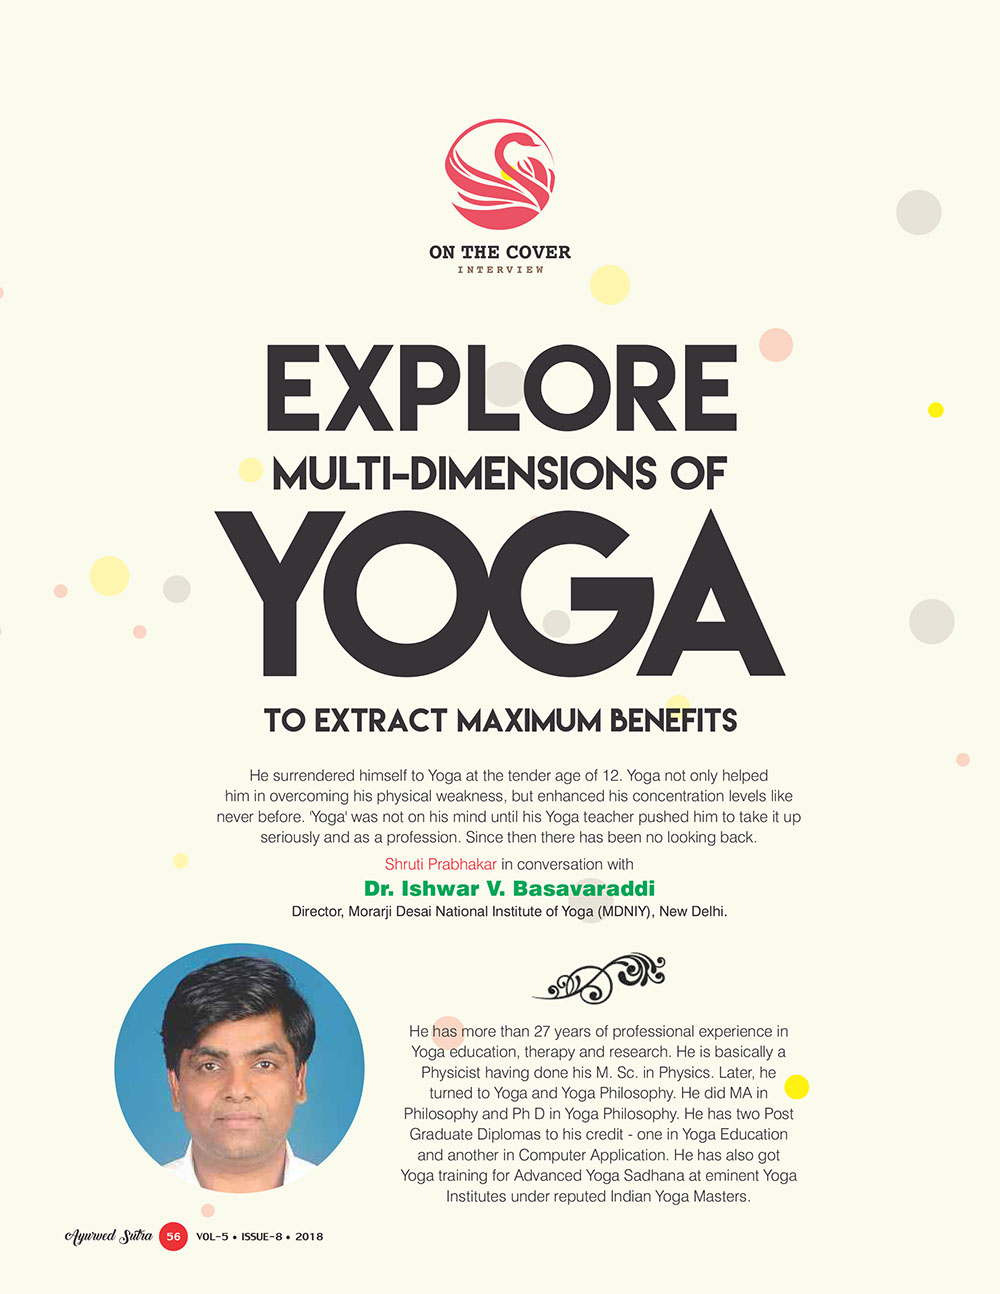 Ayurvedsutra Vol 05 issue 08 58 - Explore Multi-dimensions of Yoga